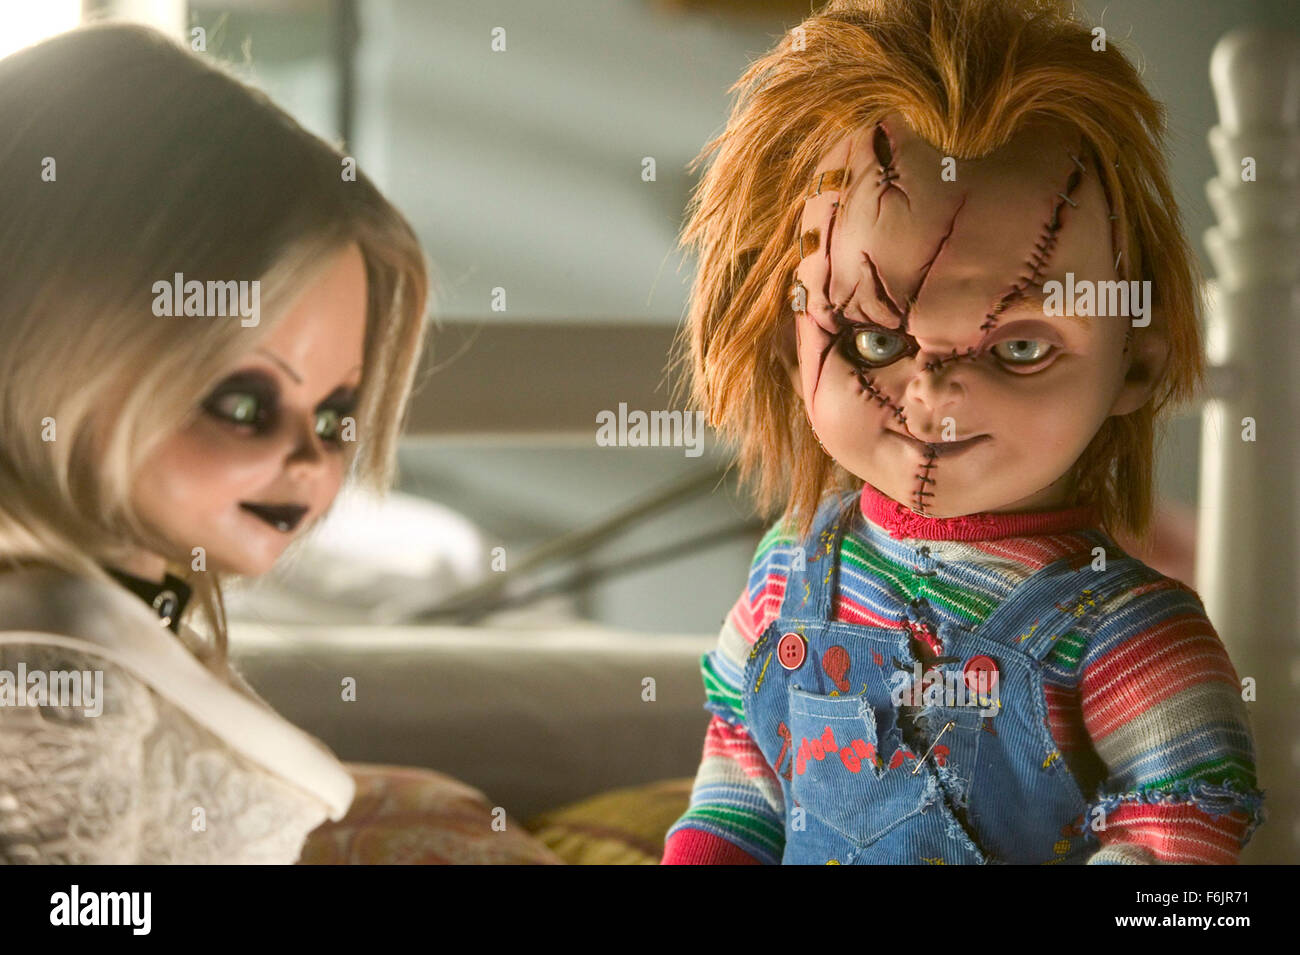 Chucky Doll Stock Photos Chucky Doll Stock Images Alamy